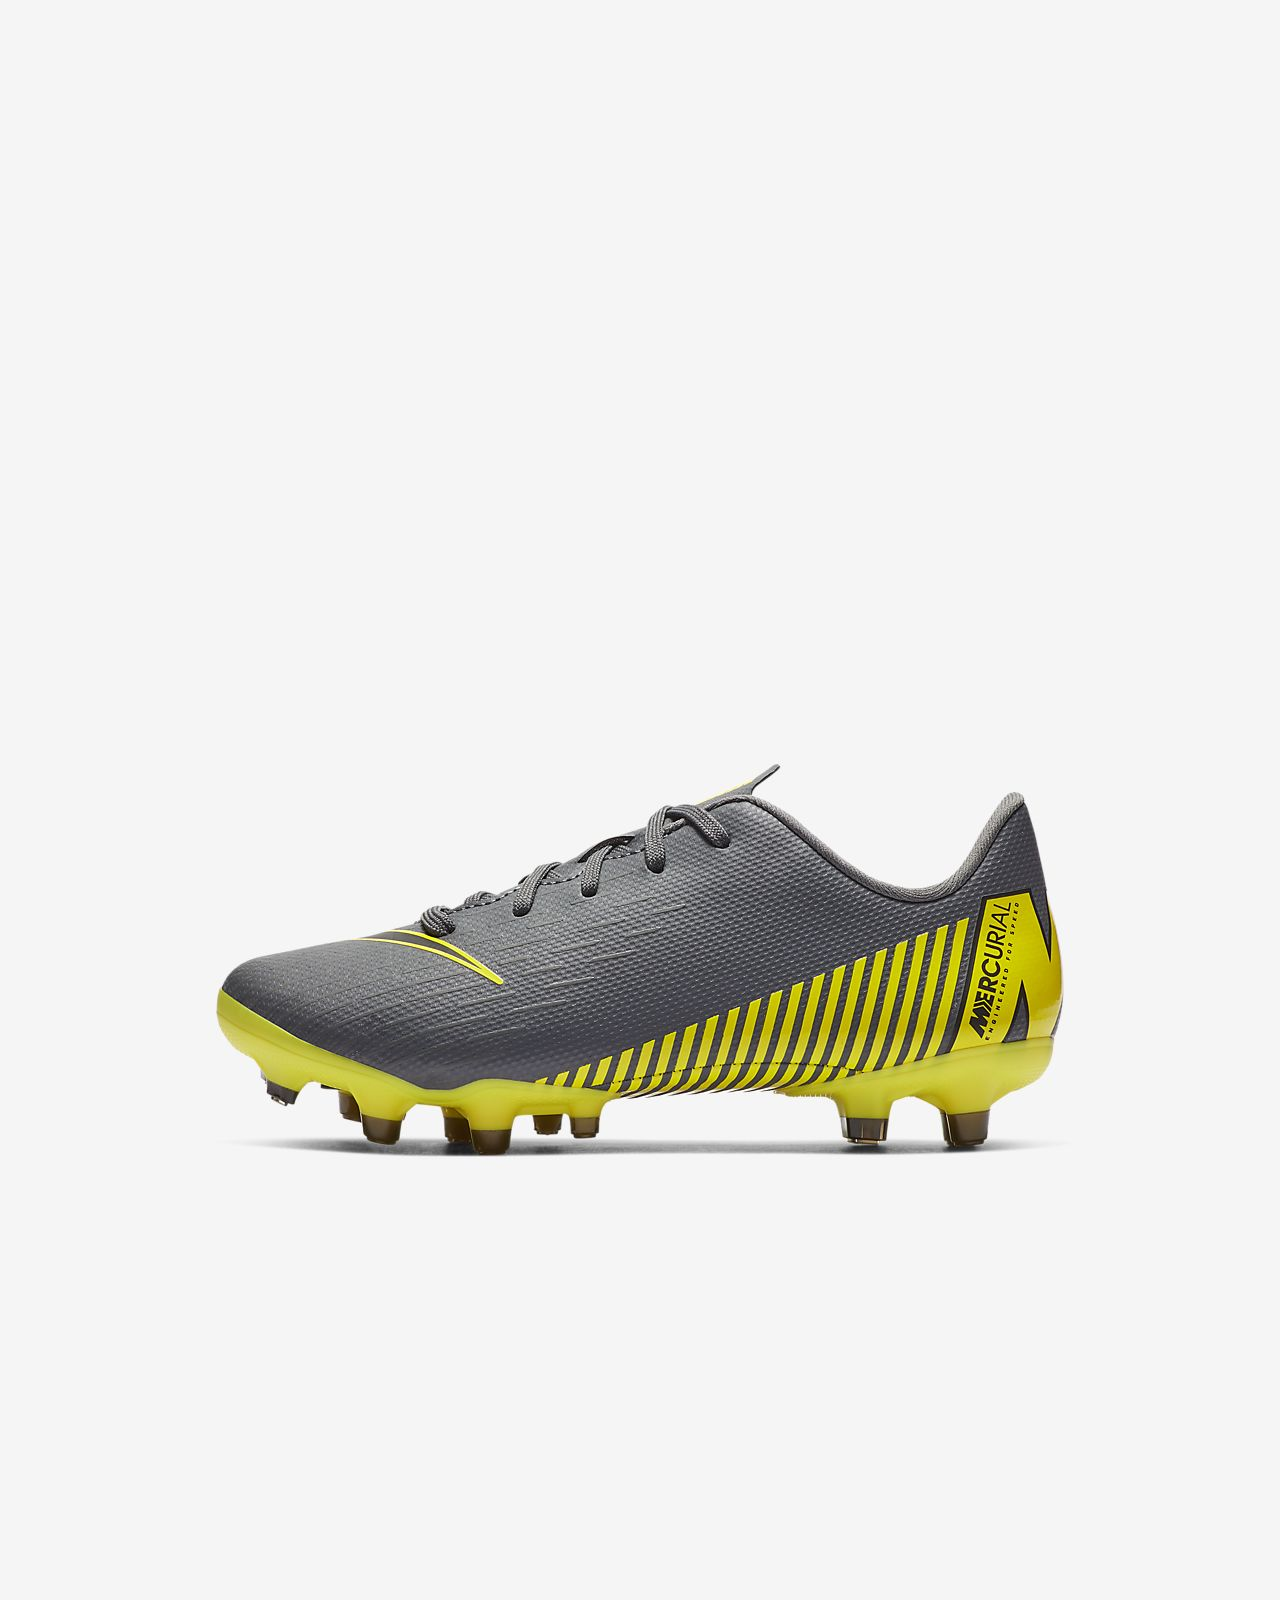 Nike Jr. MercurialX Vapor XII Academy Toddler/Younger Kids' Multi-Ground Football Boot